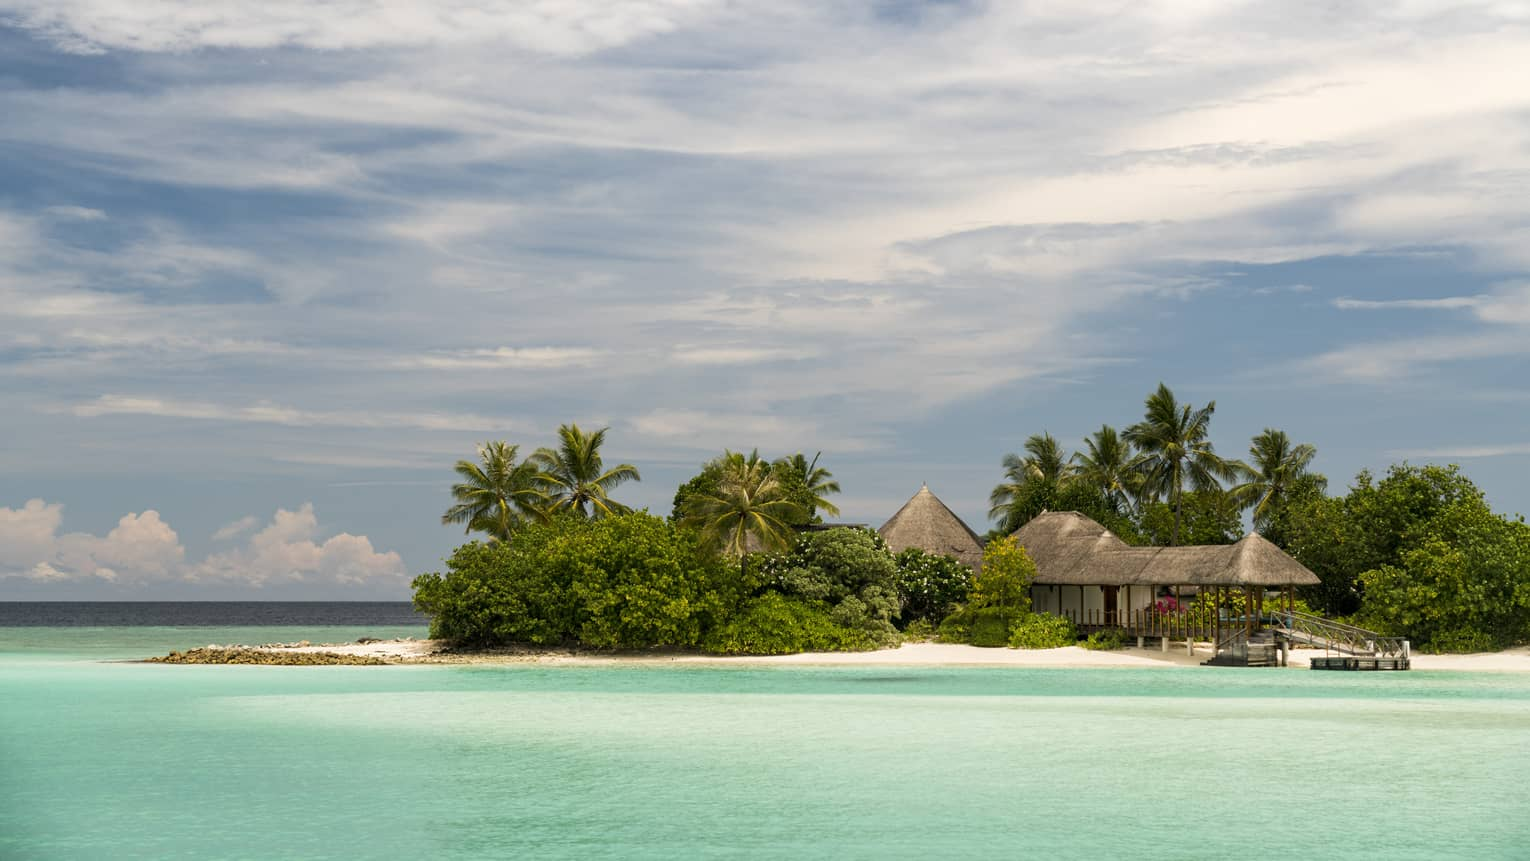 Small island with thatched-roof building housing The Island Spa, surrounded by turquoise waters